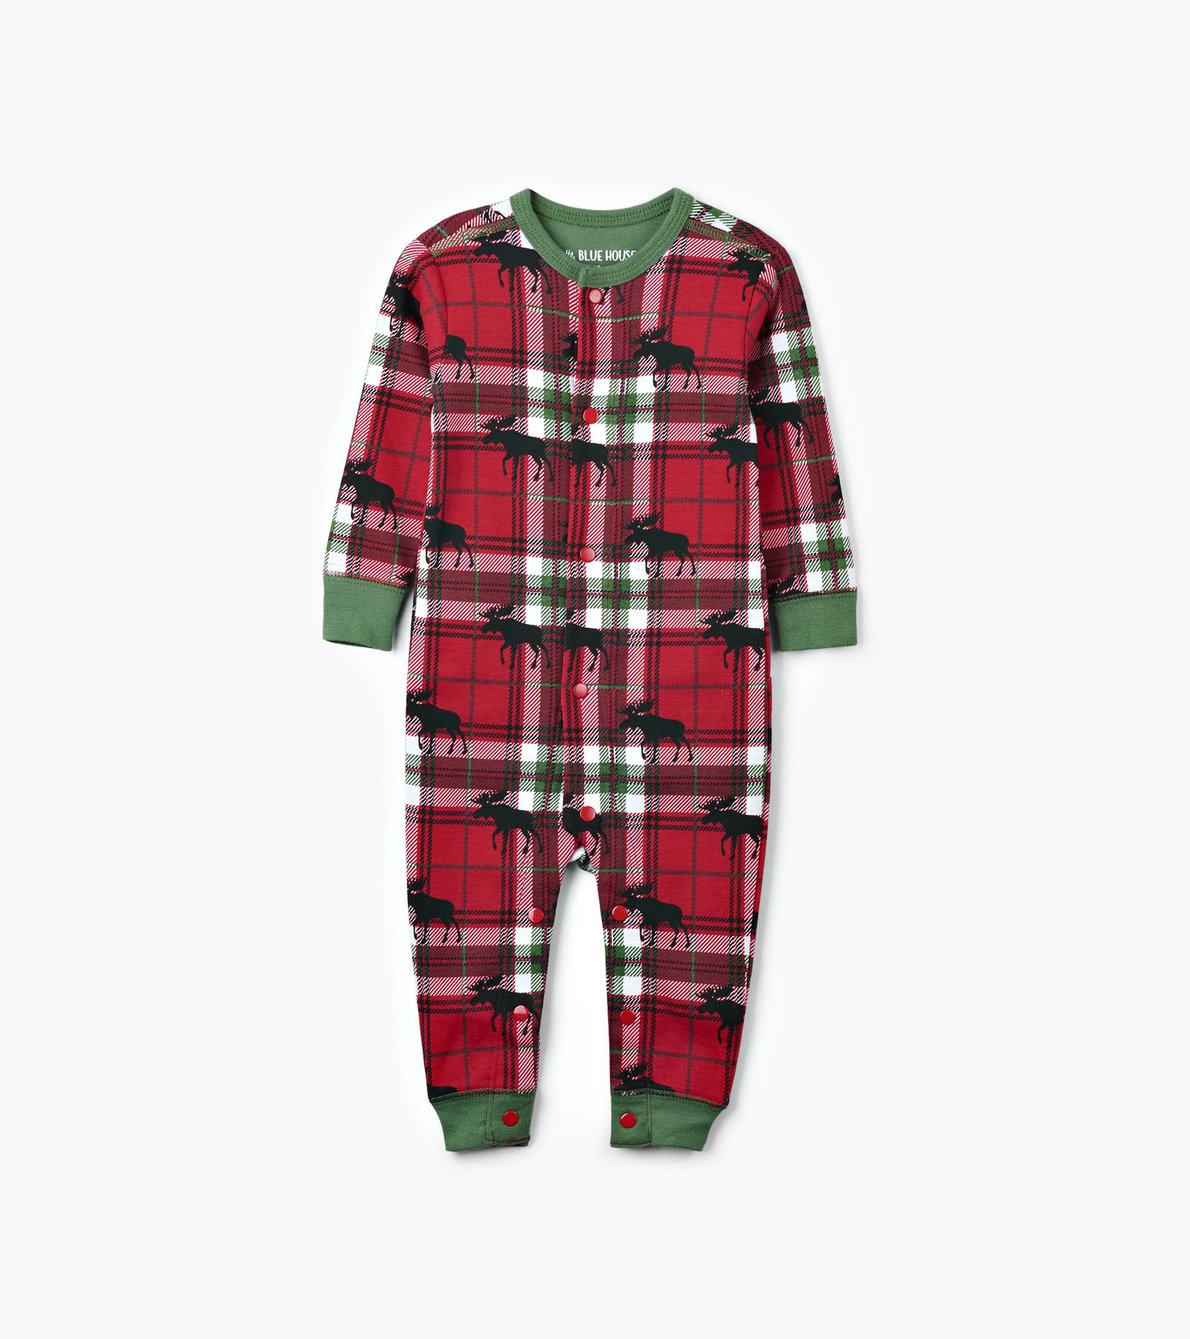 View larger image of Holiday Moose on Plaid Baby Union Suit